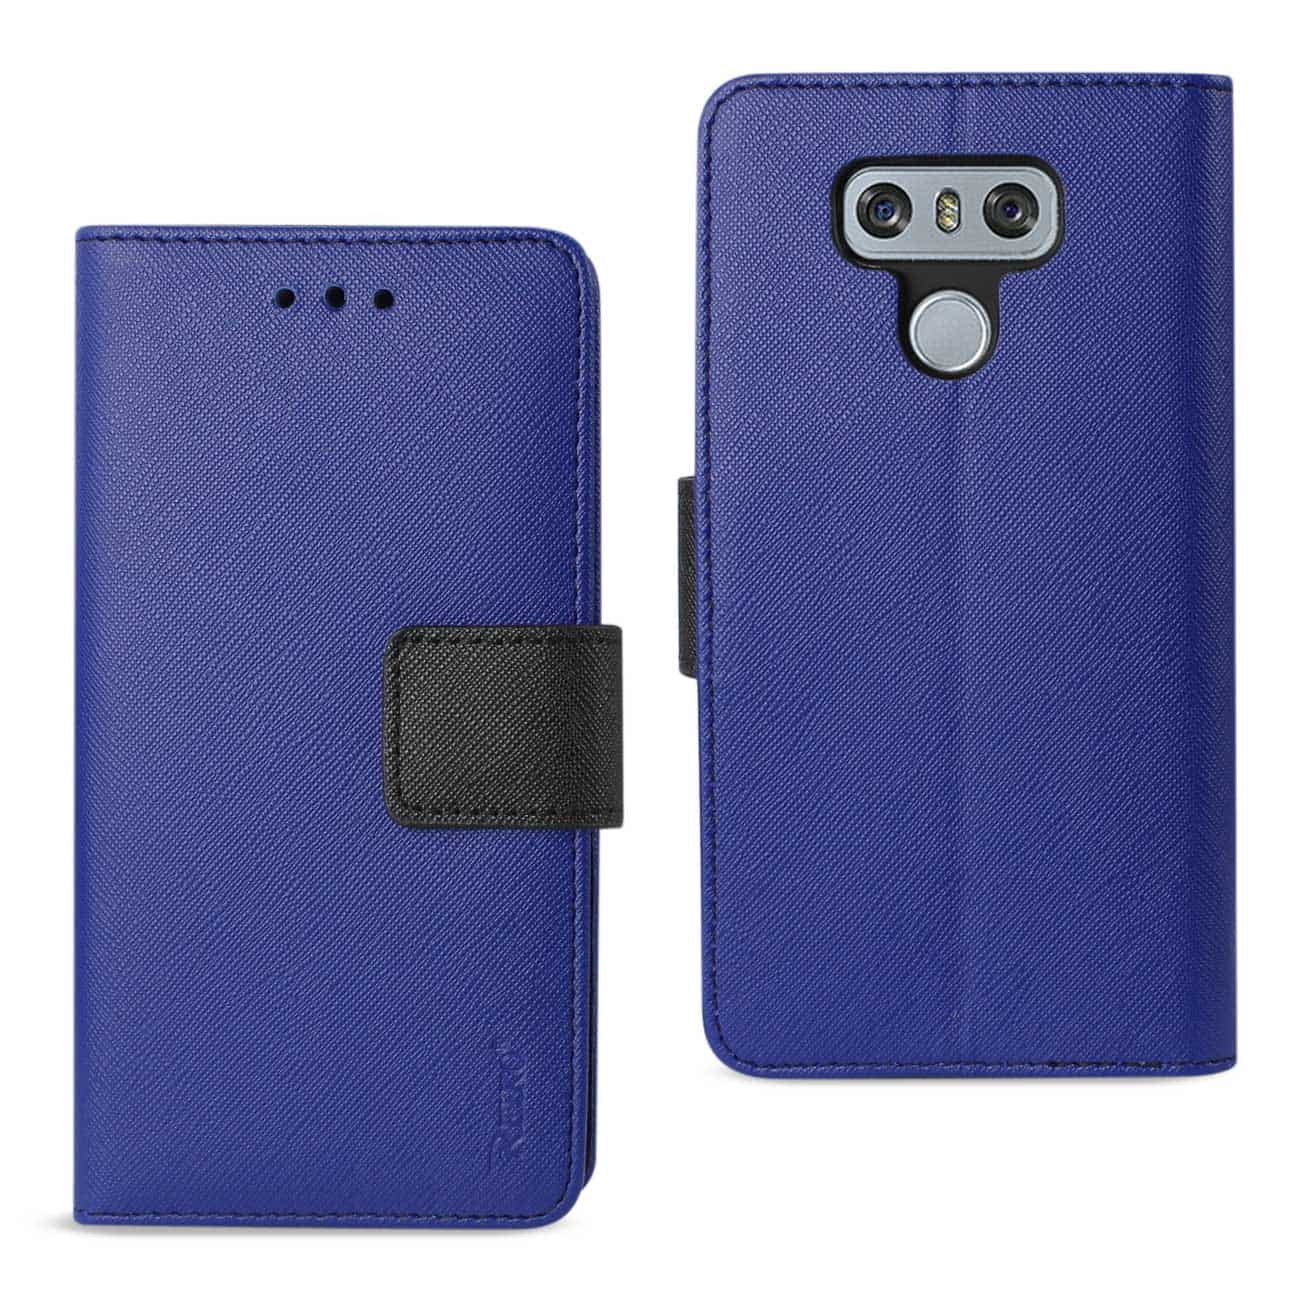 LG G6 3-IN-1 WALLET CASE IN NAVY